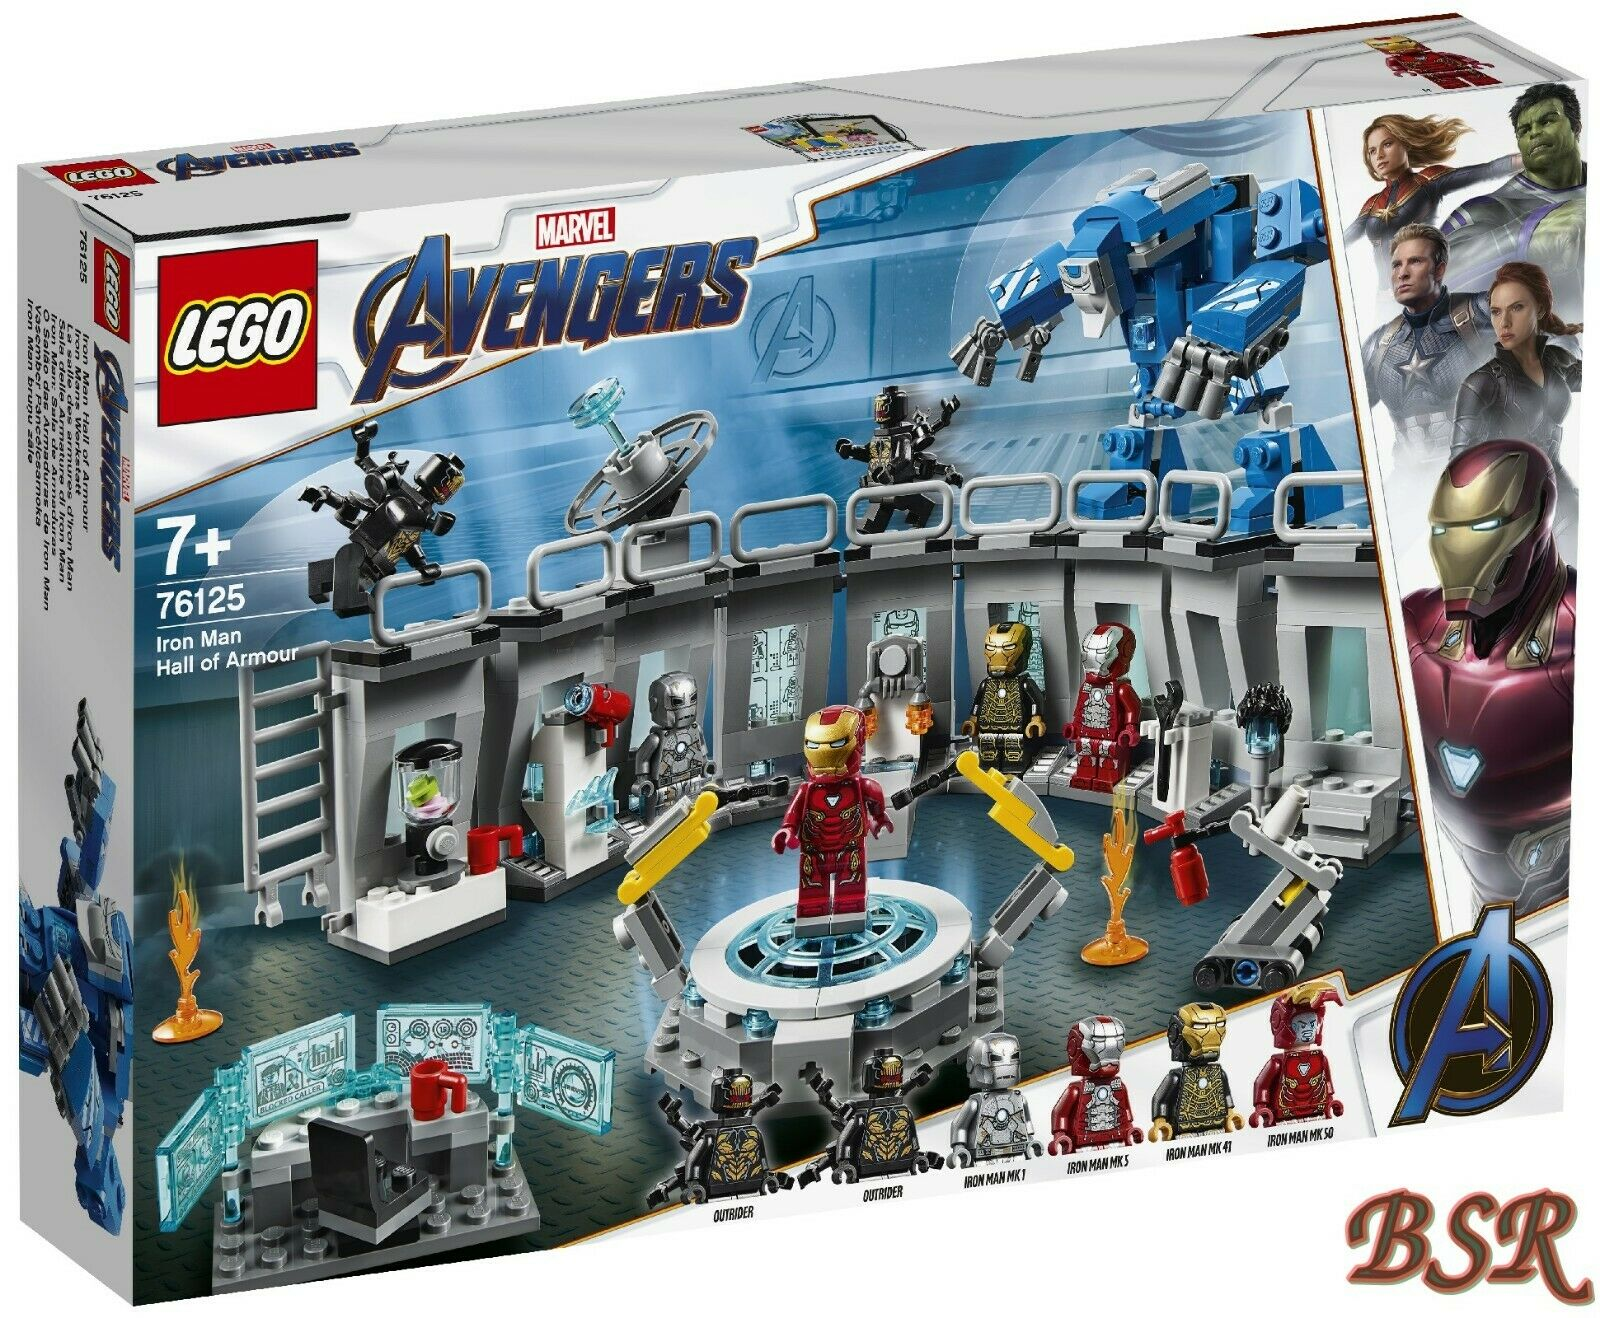 Lego ® Marvel Avengers   76125 IRON hommeS Workshop &  shipping & nouveau & OVP  promotions passionnantes